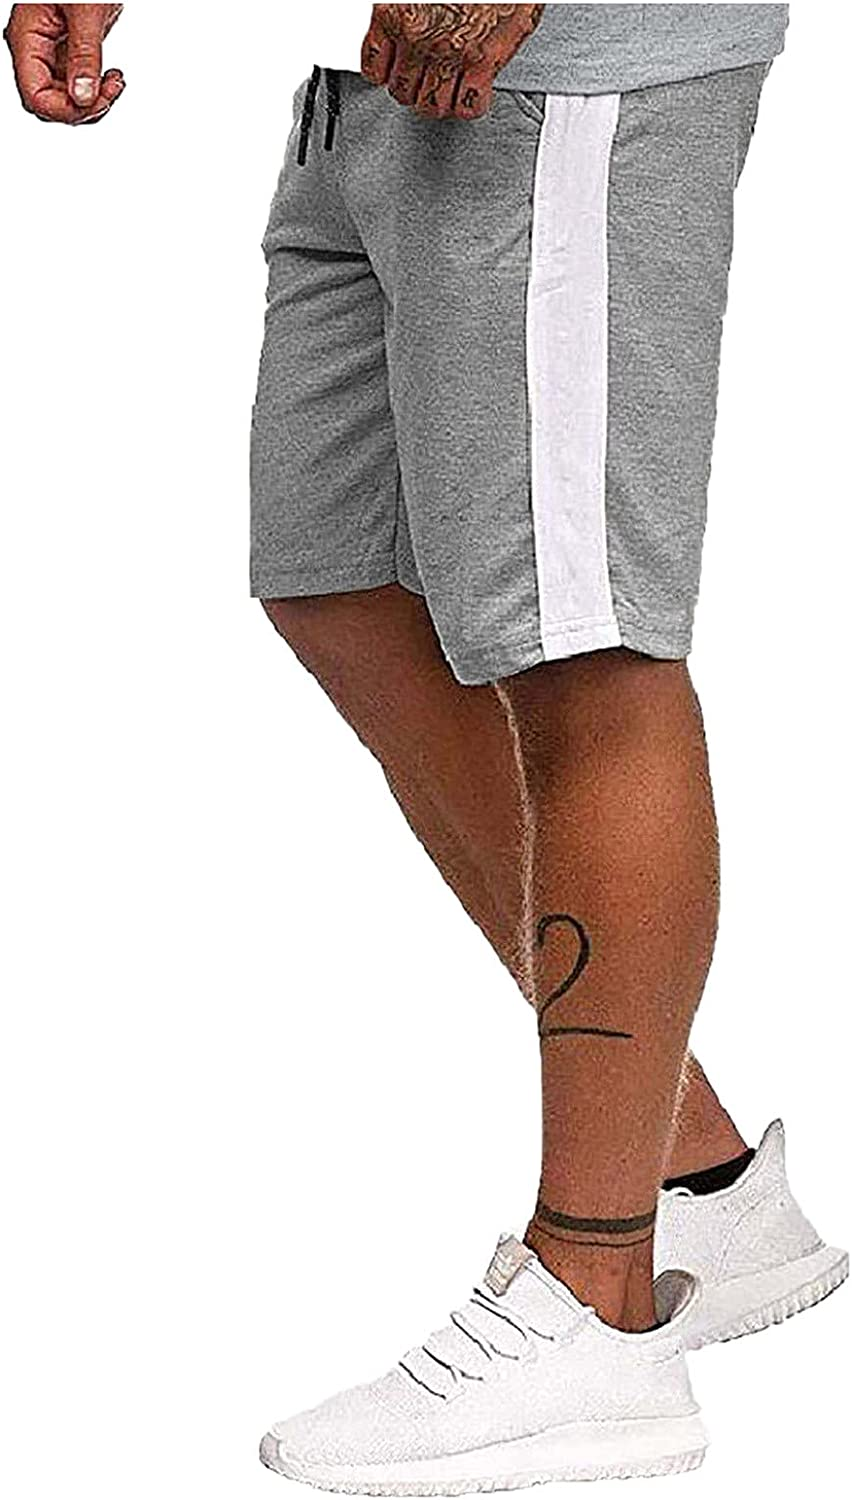 Bisitoy Mens Shorts Casual Solid Resilience Tooling Shorts Relaxed Fit Summer Daily Cargo Shorts with Pockets